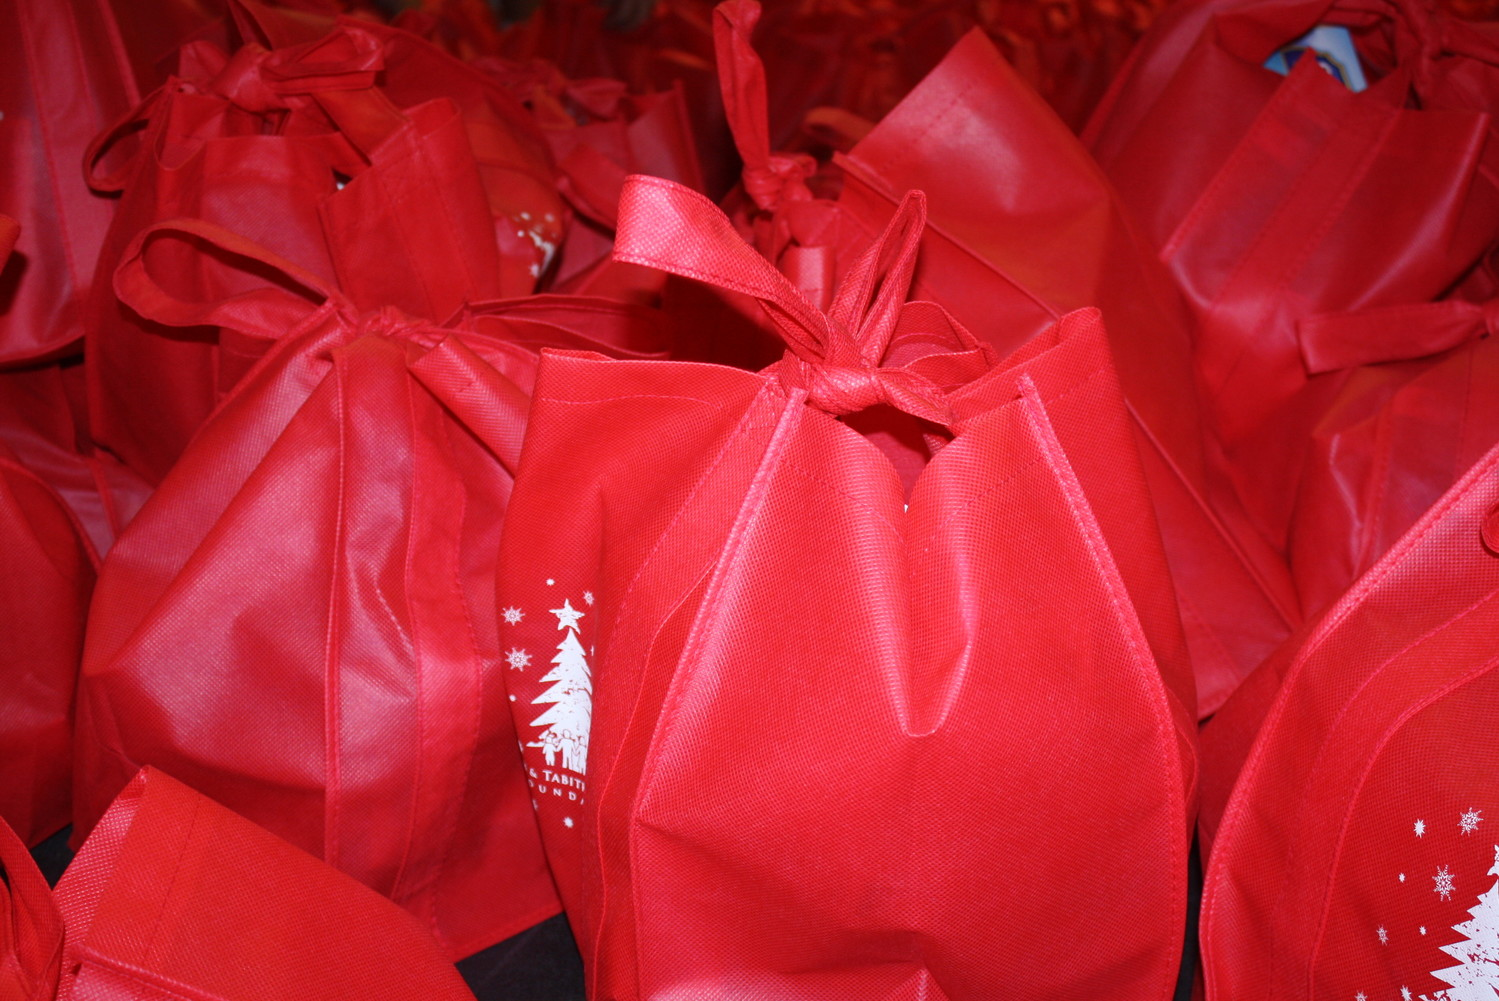 Bags of food await delivery to kids in need this holiday season.